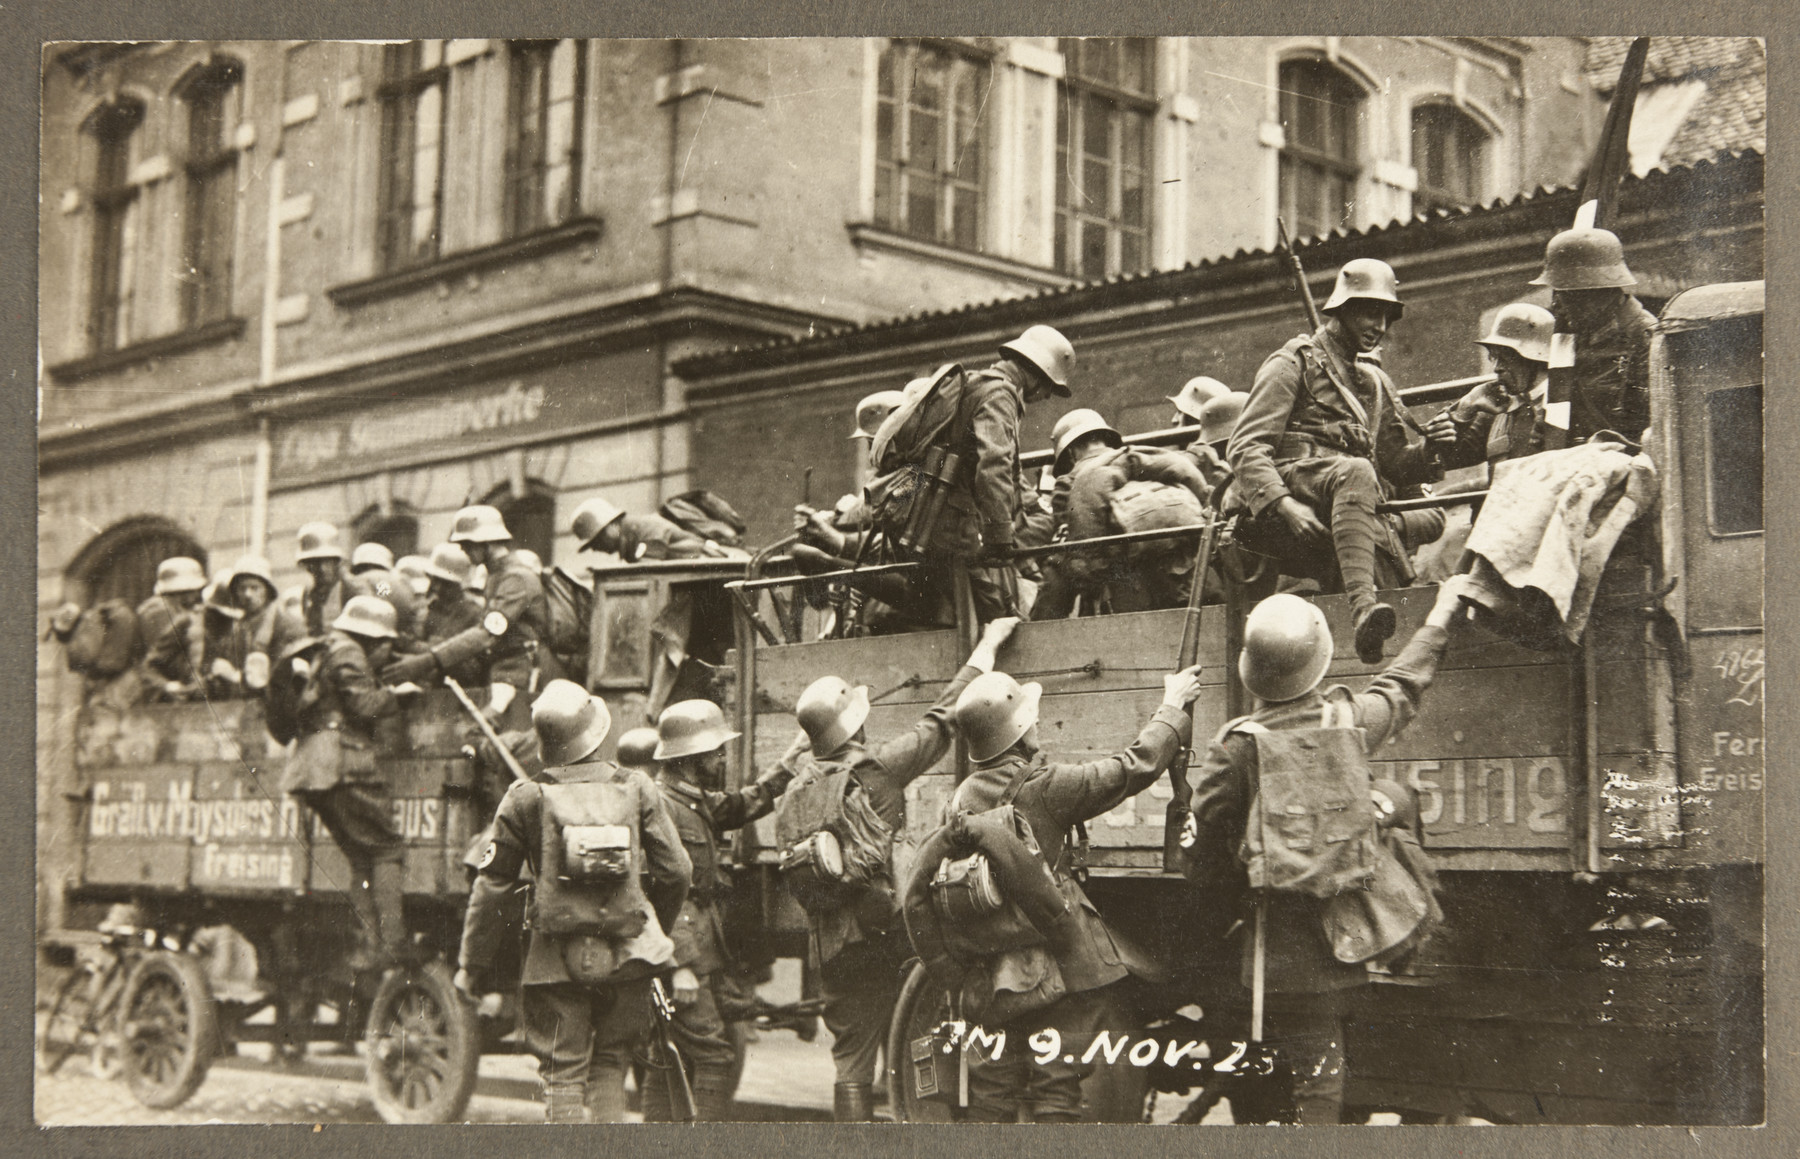 Armed SA men pile out of a truck in to a Munich city street during the Beer Hall Putsch.